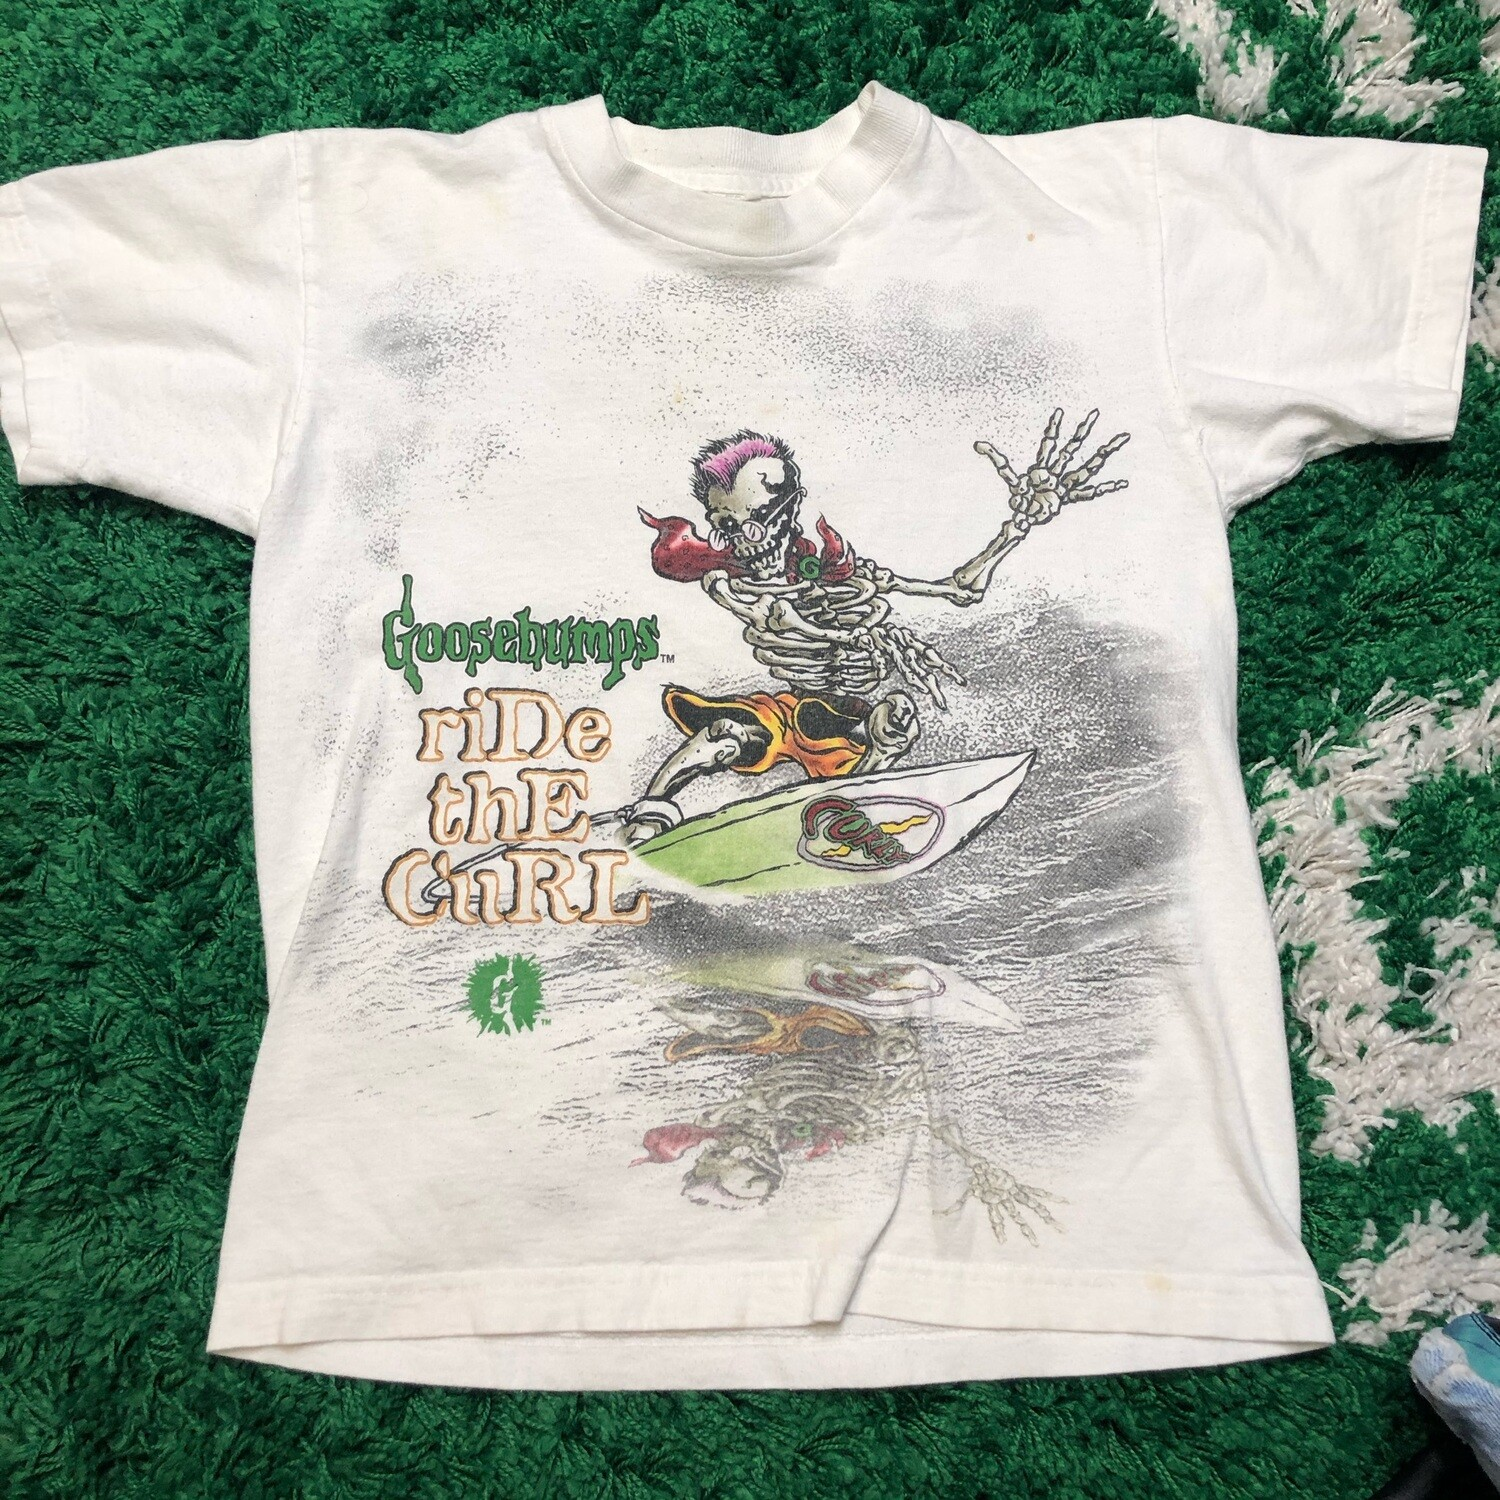 Goosebumps Ride the Curl Tee Size Youth Medium